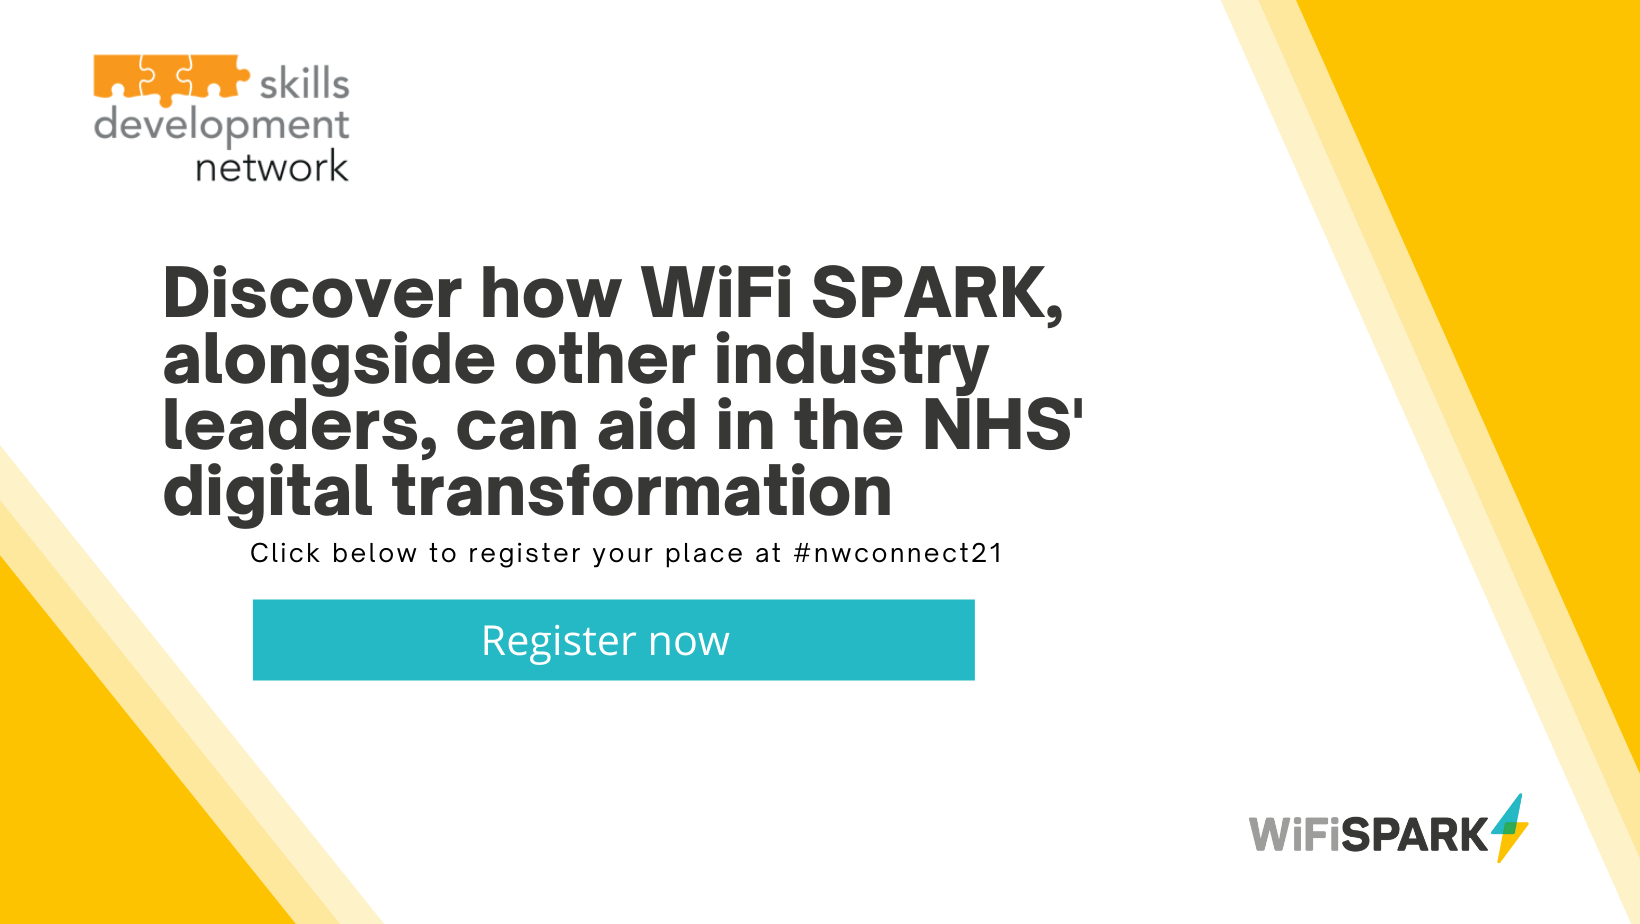 NW Connect 2021 Registration Link